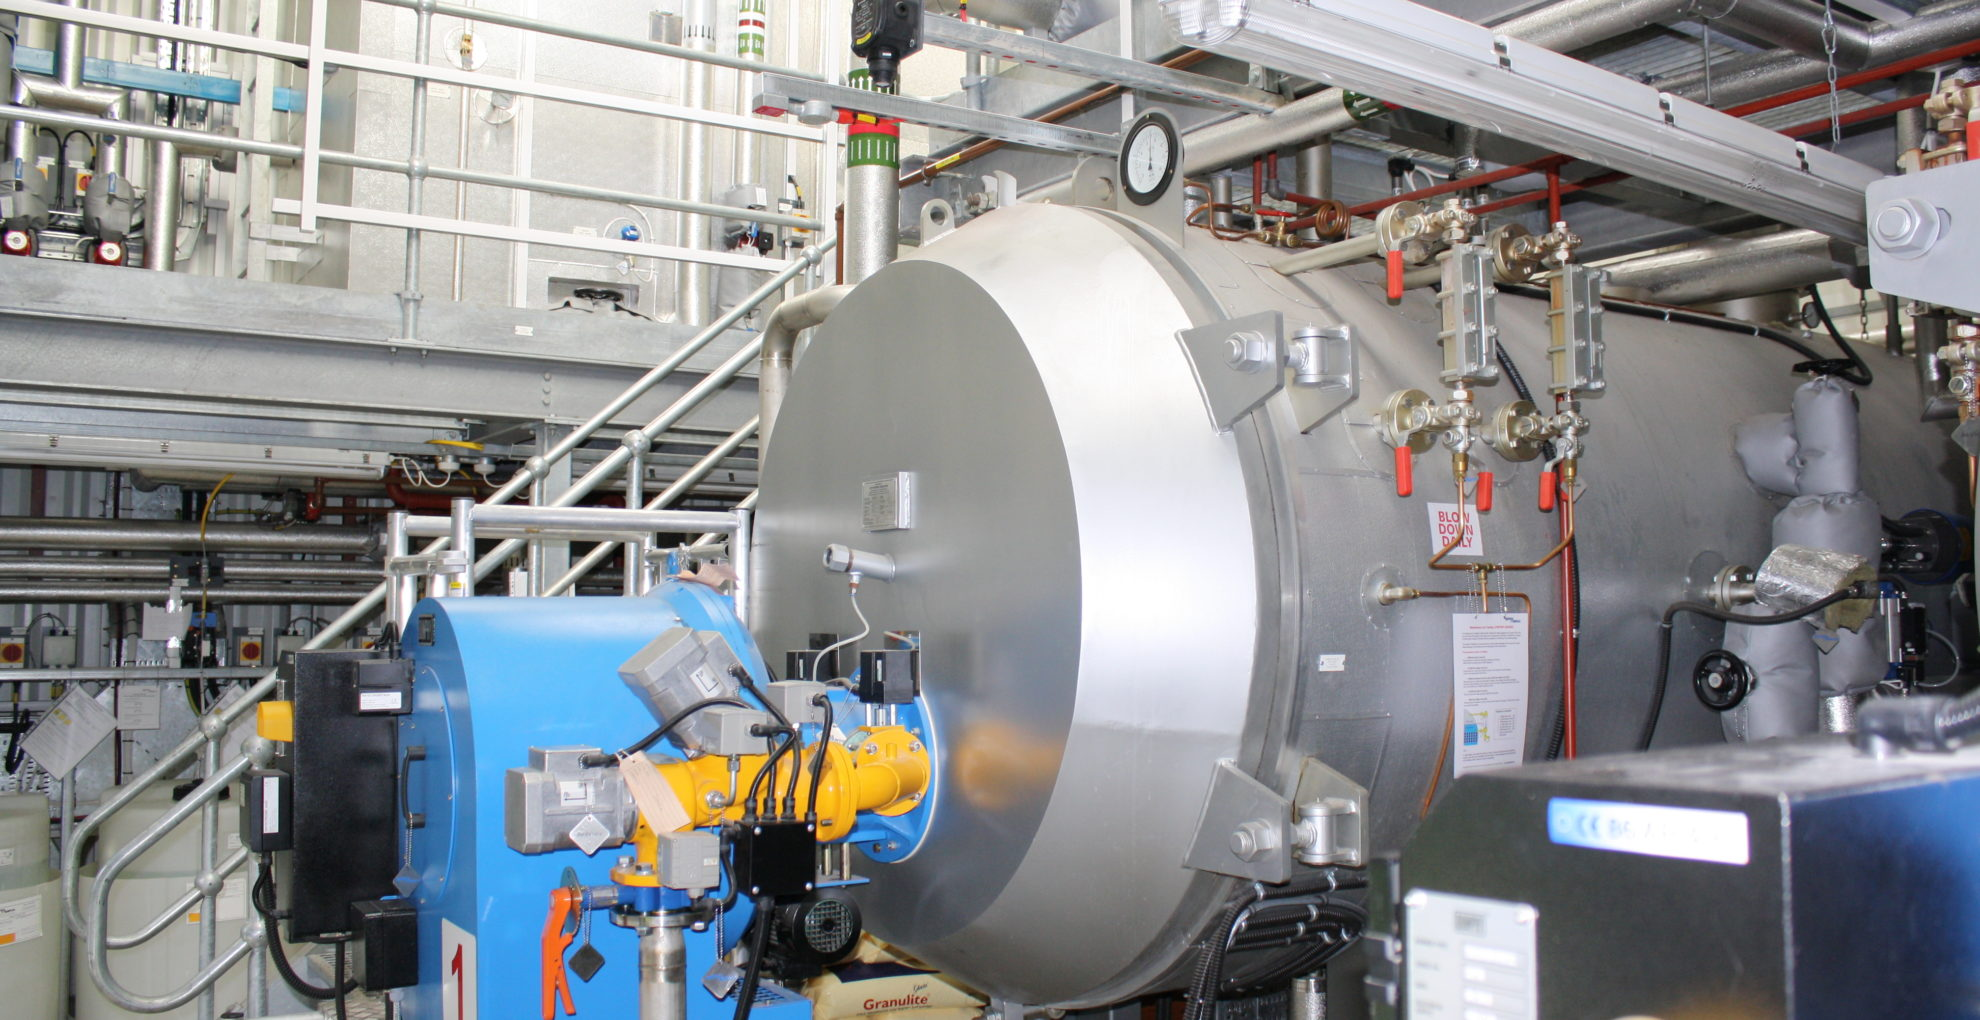 Preventative-Maintenance-for-Industrial-Boilers-Honiron